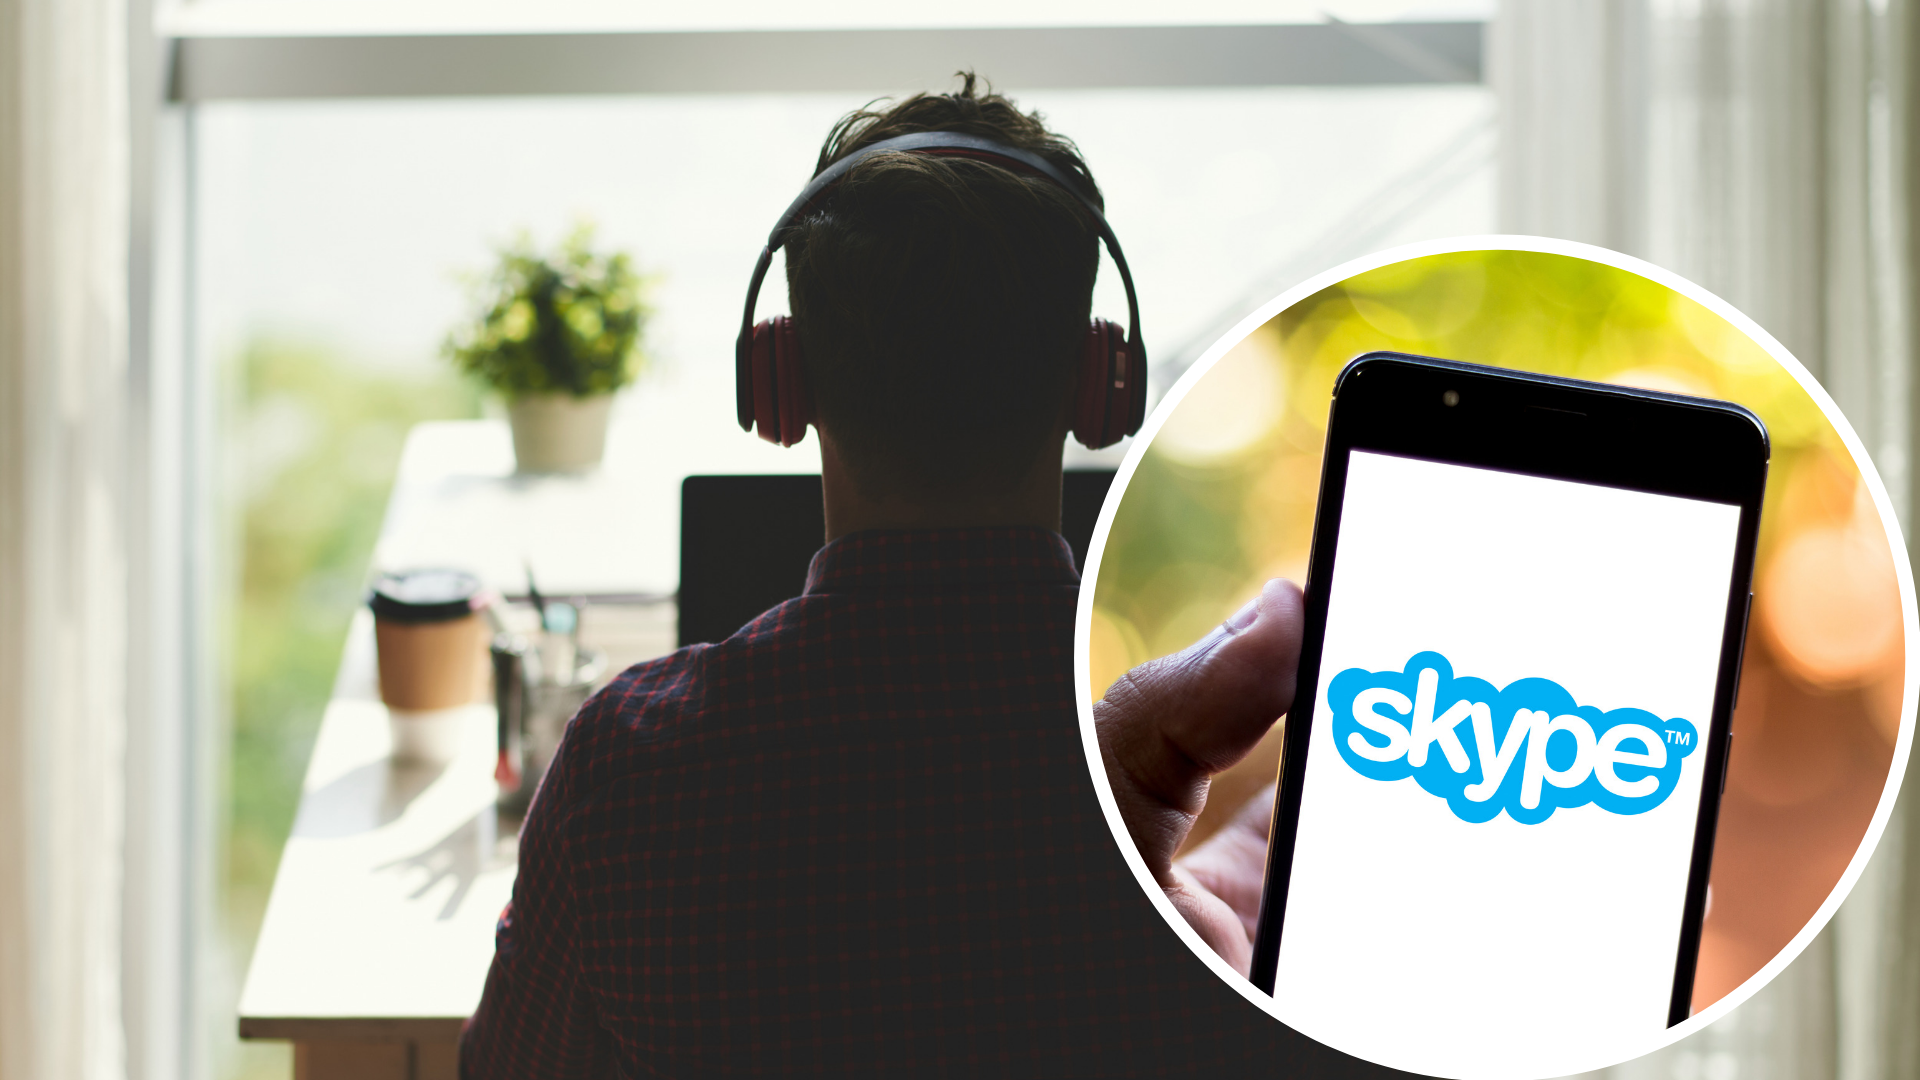 Microsoft workers listening in on intimate Skype calls